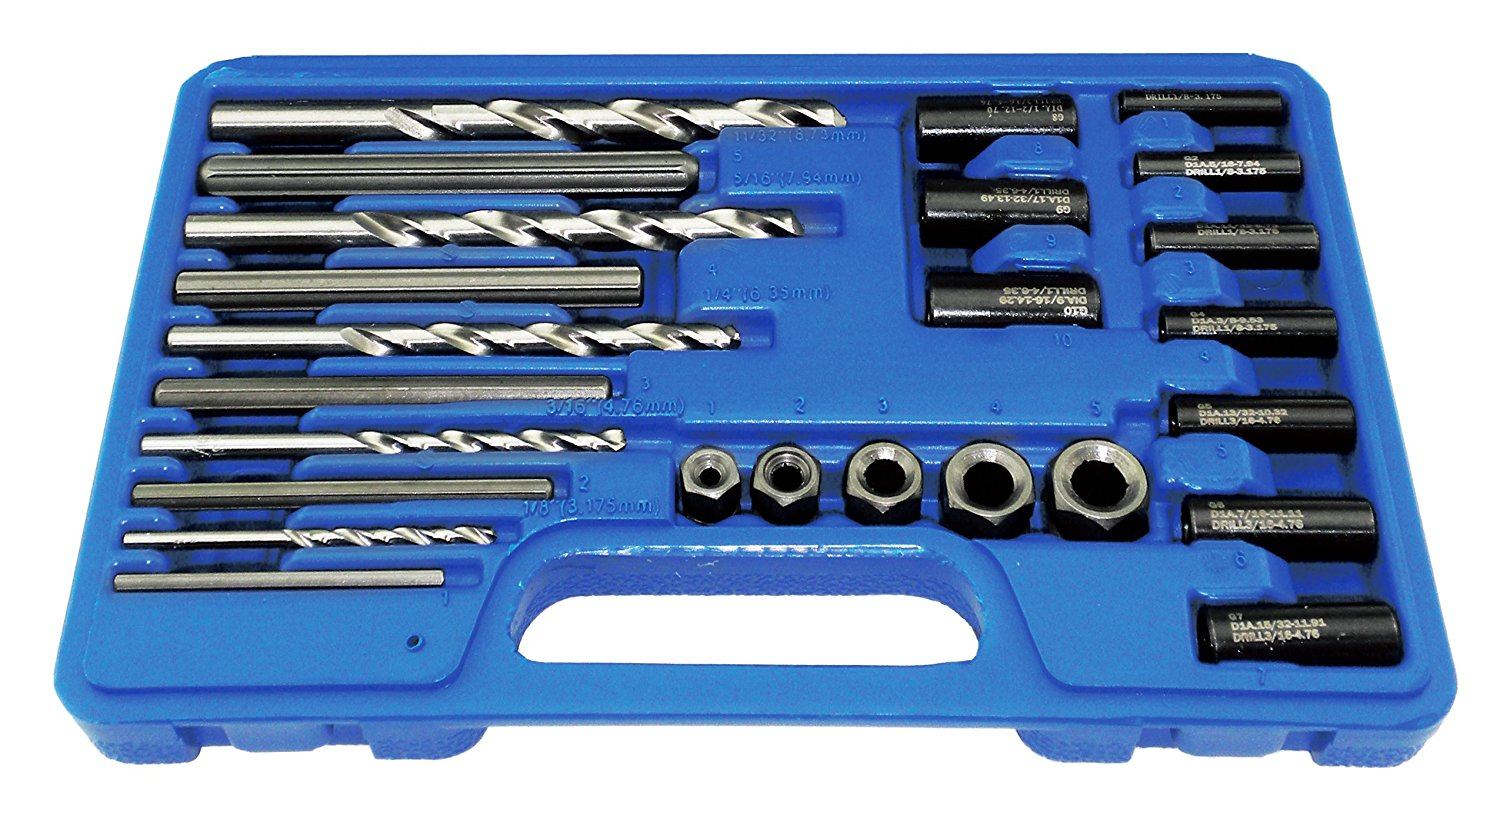 Astro 9447 Screw Extractor/Drill and Guide Set, 25-Piece